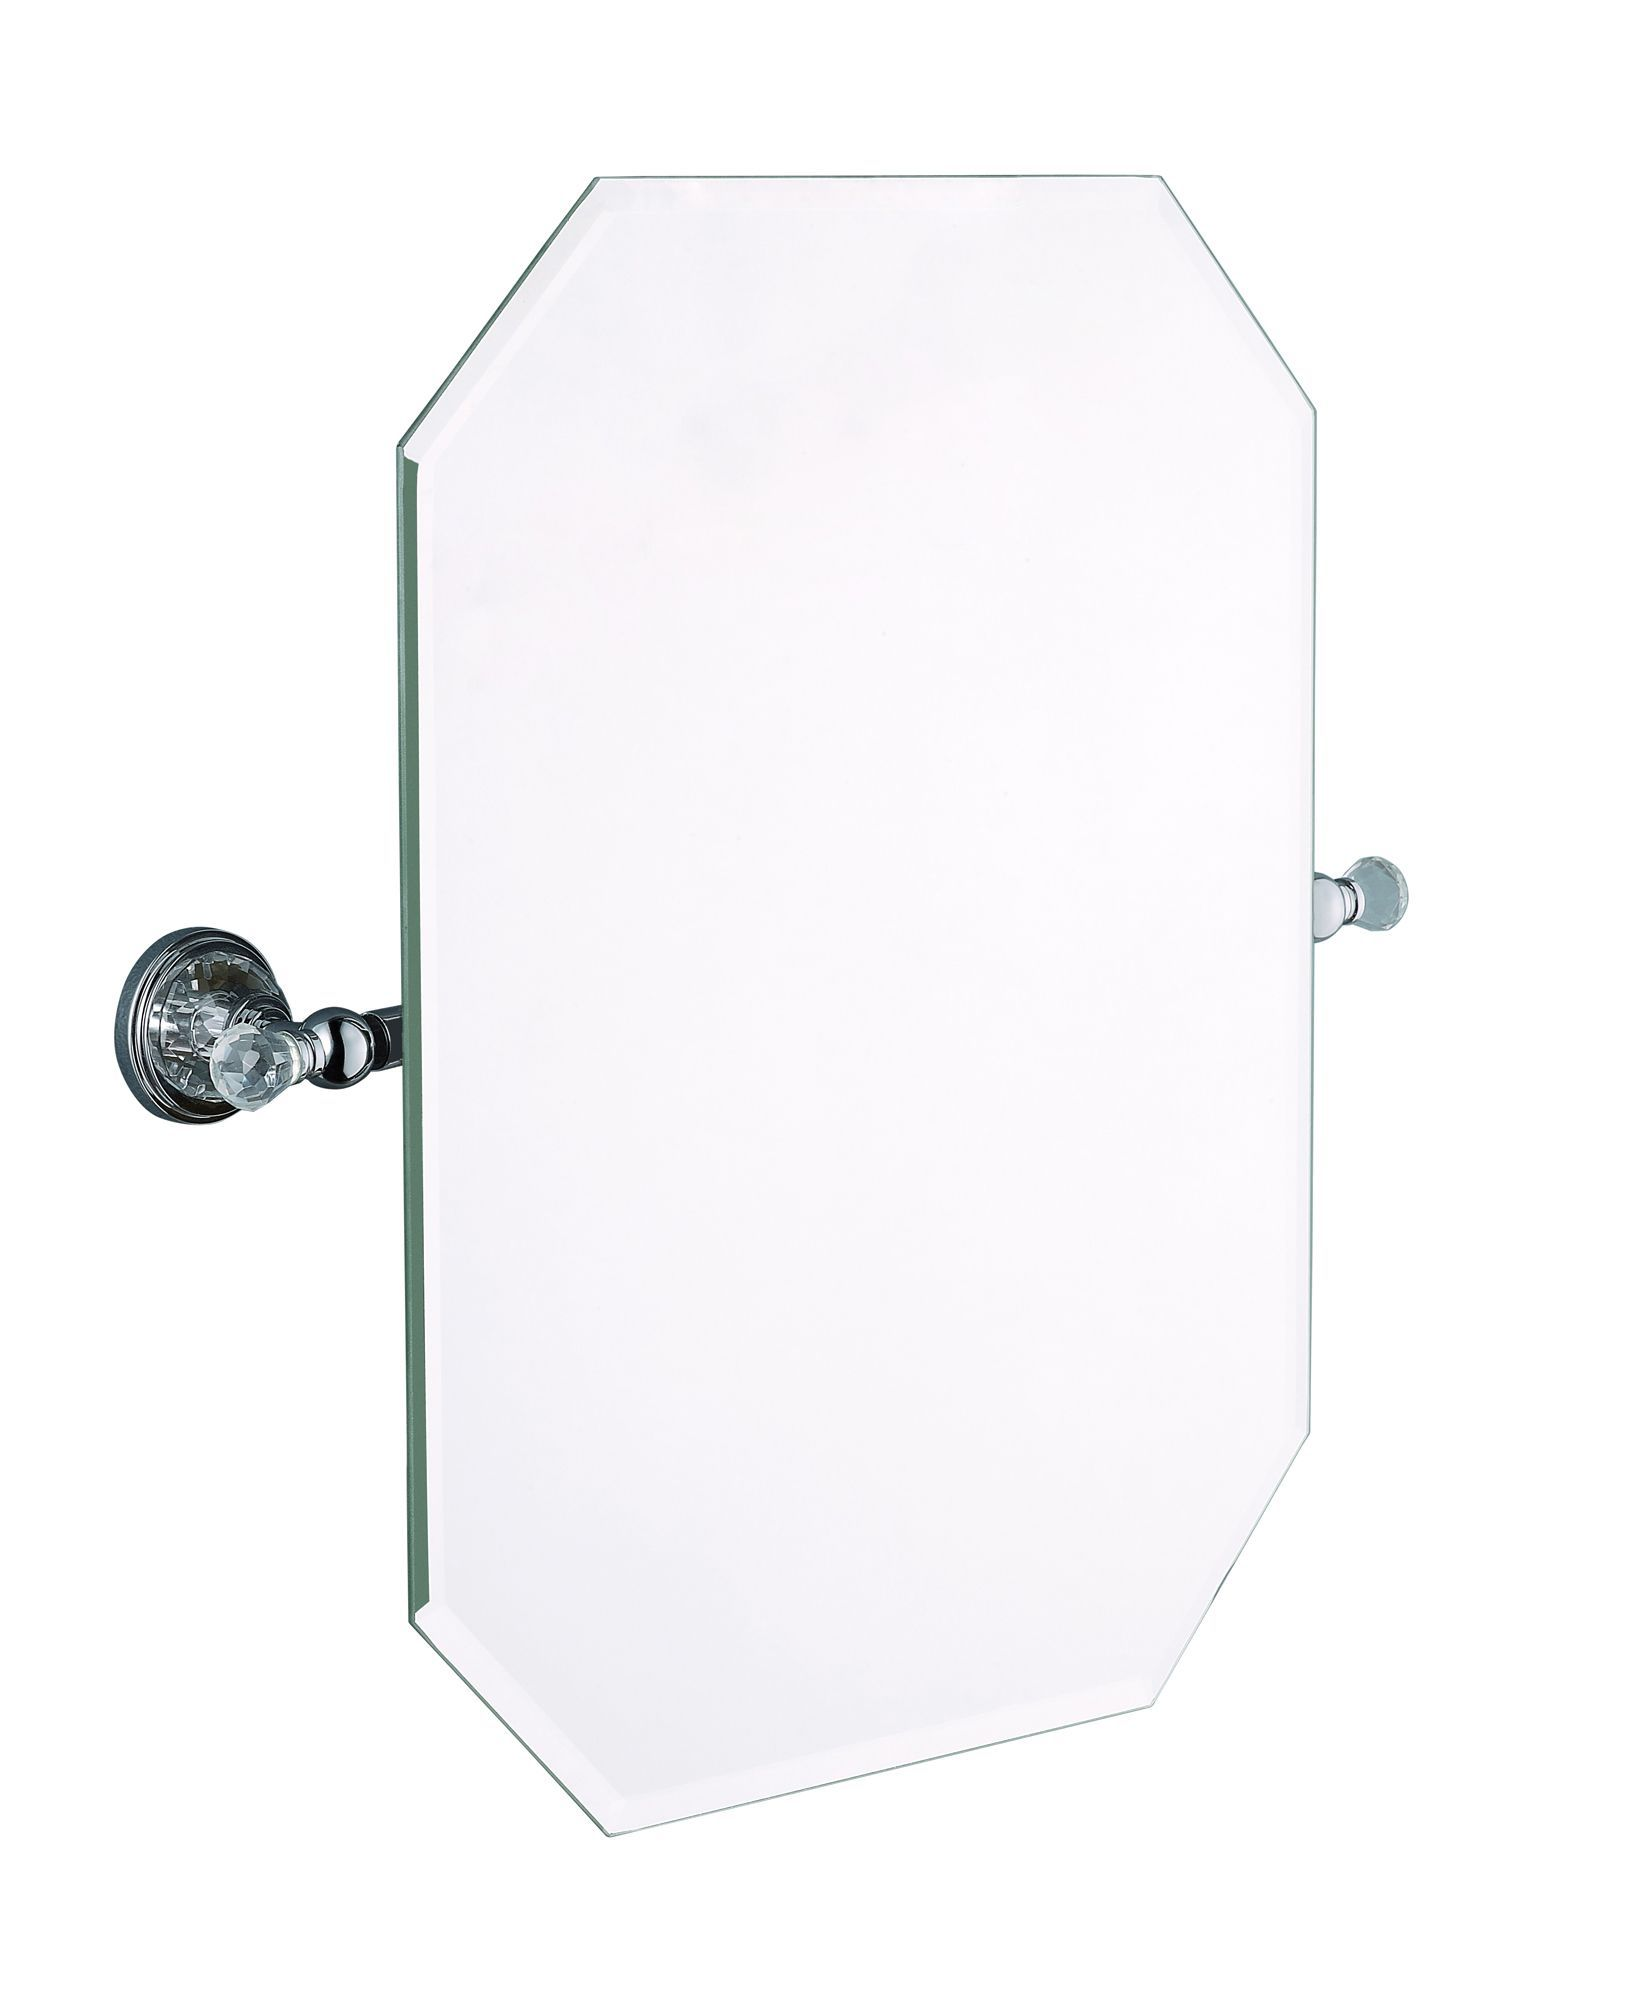 Cooke and lewis bathroom mirrors - Cooke Lewis Eva Octagon Wall Mirror W 500mm H 507mm Departments Diy At B Q